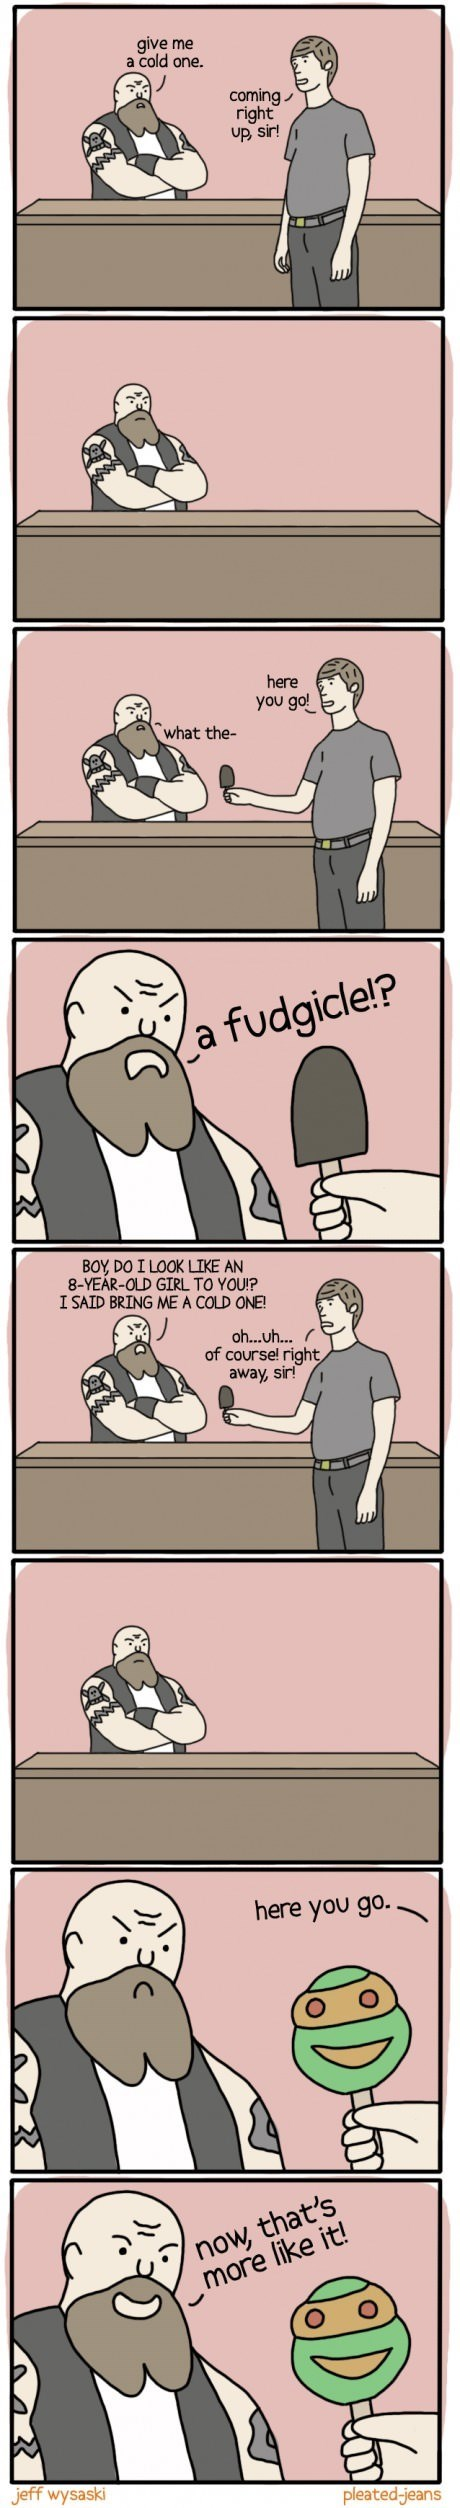 ice cream,web comics